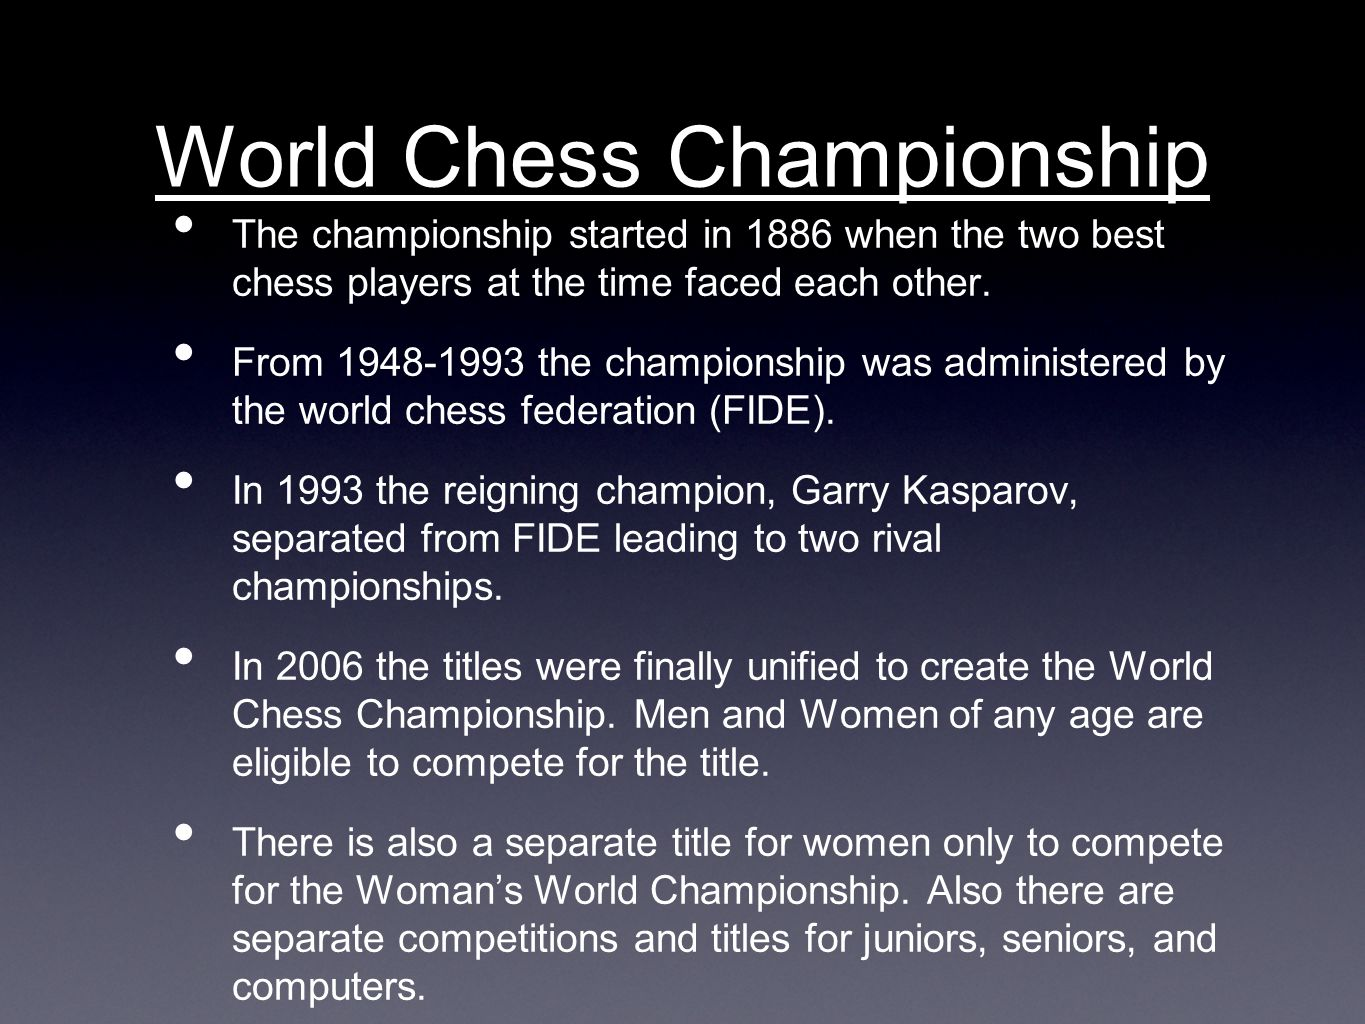 World Chess Championship The championship started in 1886 when the two best chess players at the time faced each other.